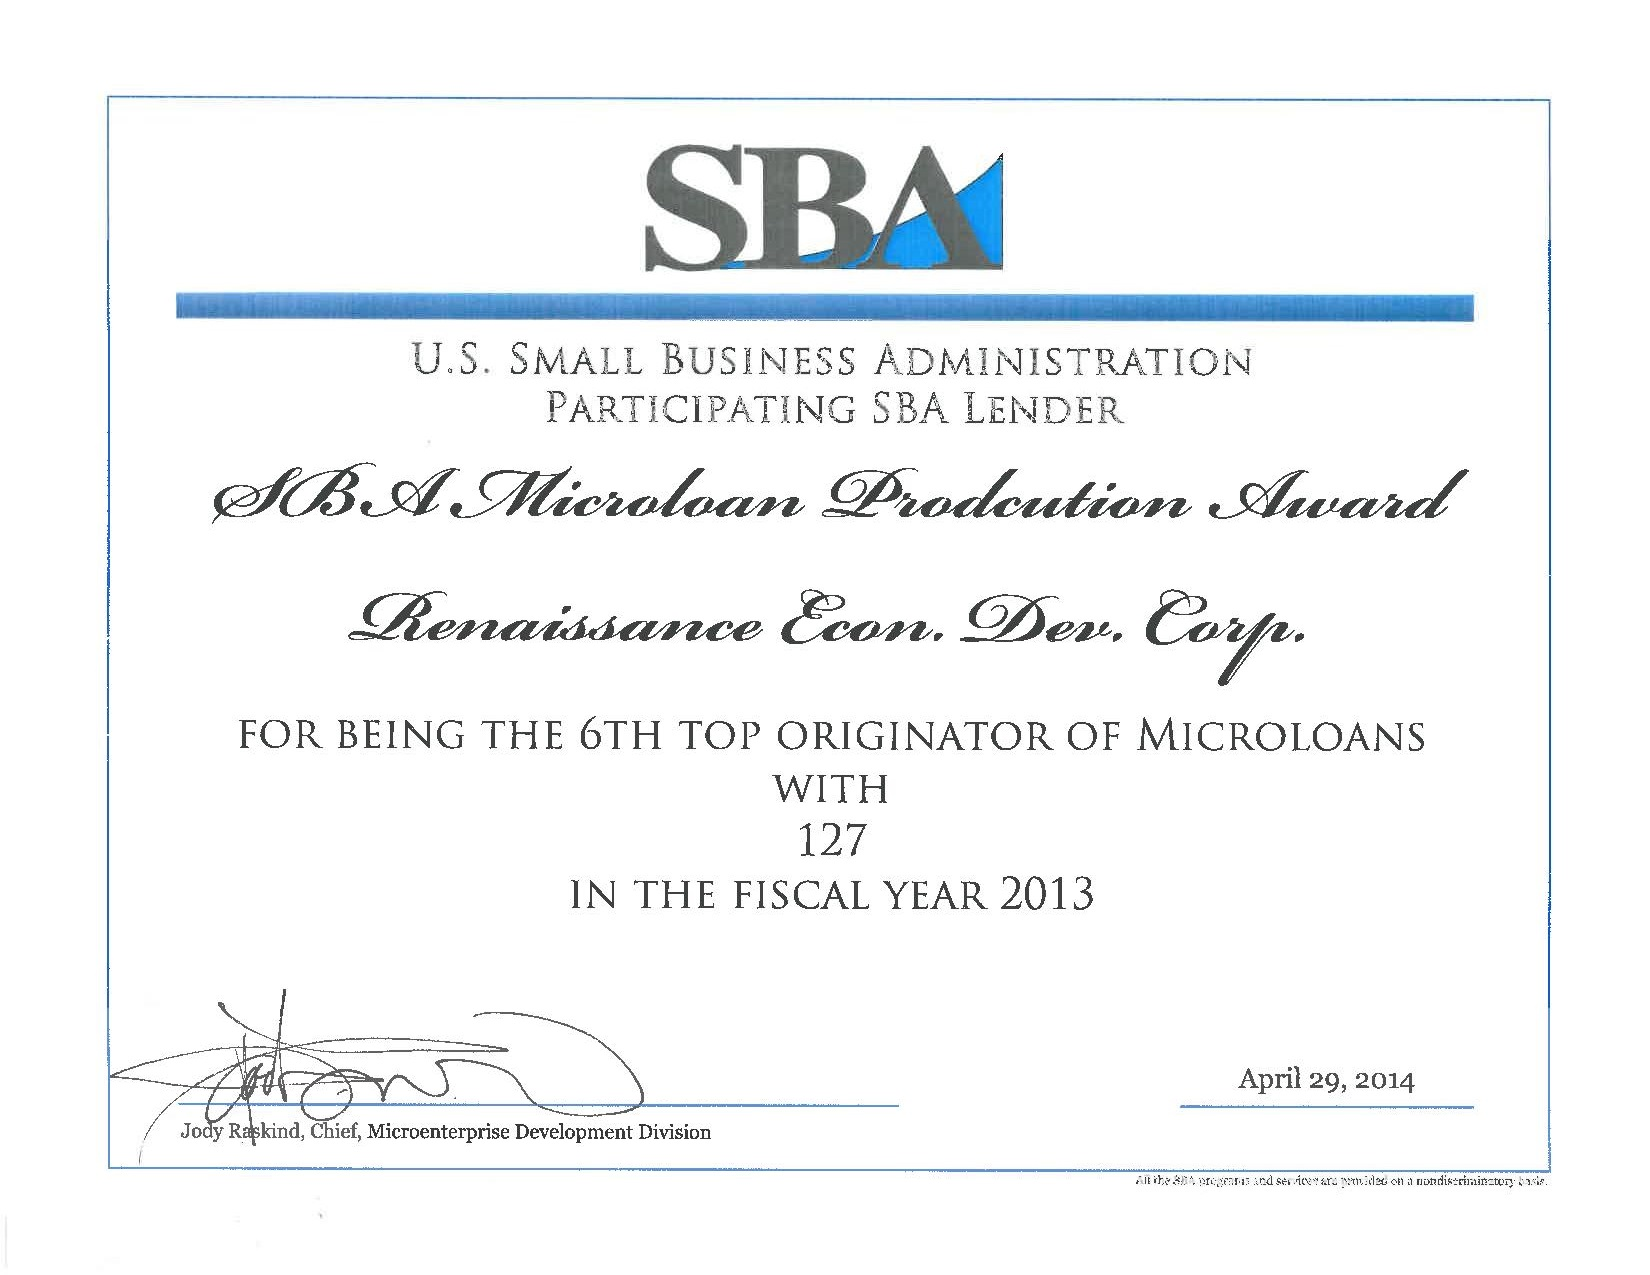 Renaissance Recognized as #6 Producer of Micro Loans by SBA